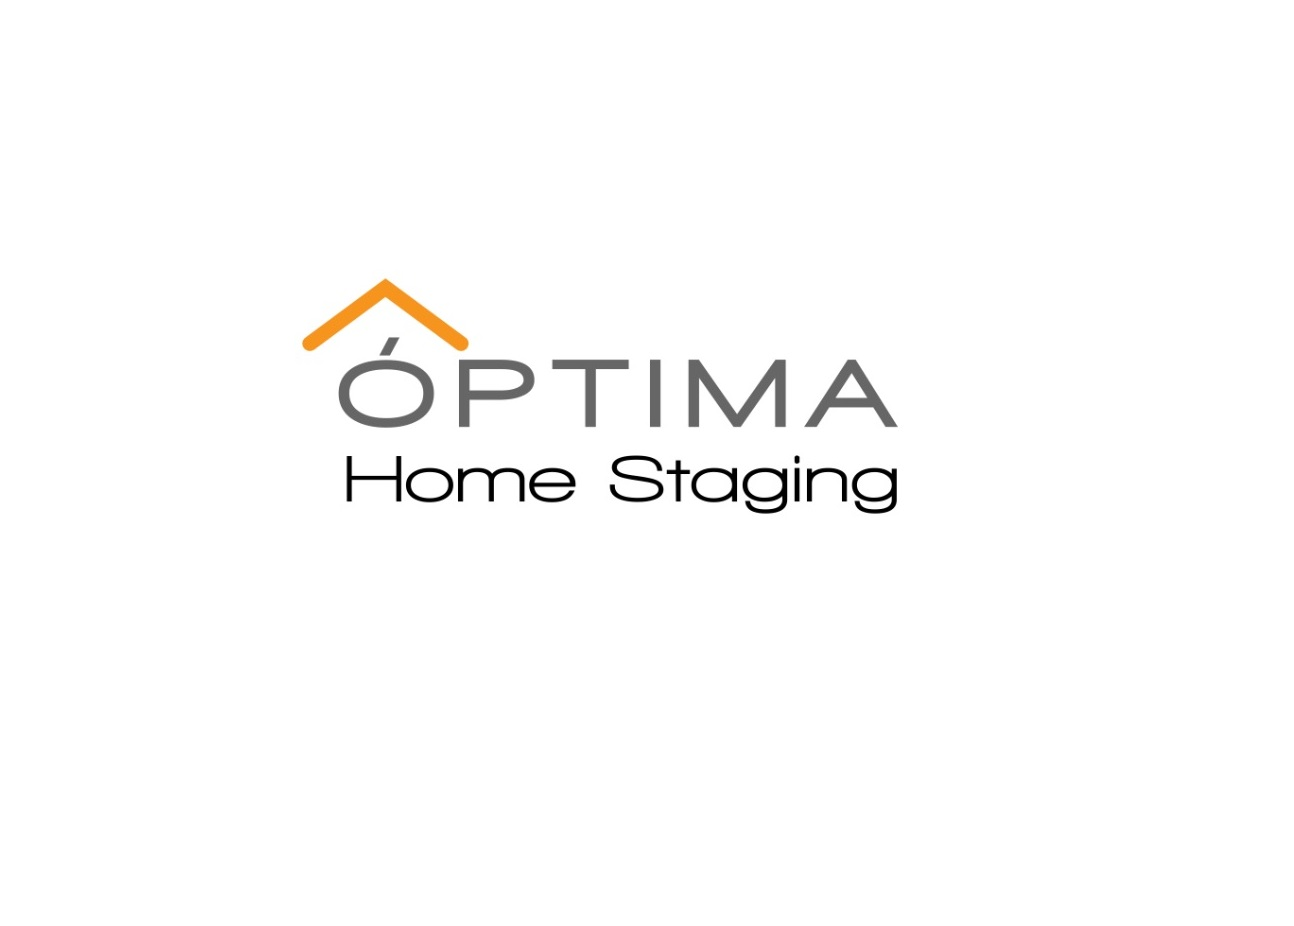 Optima homestaging